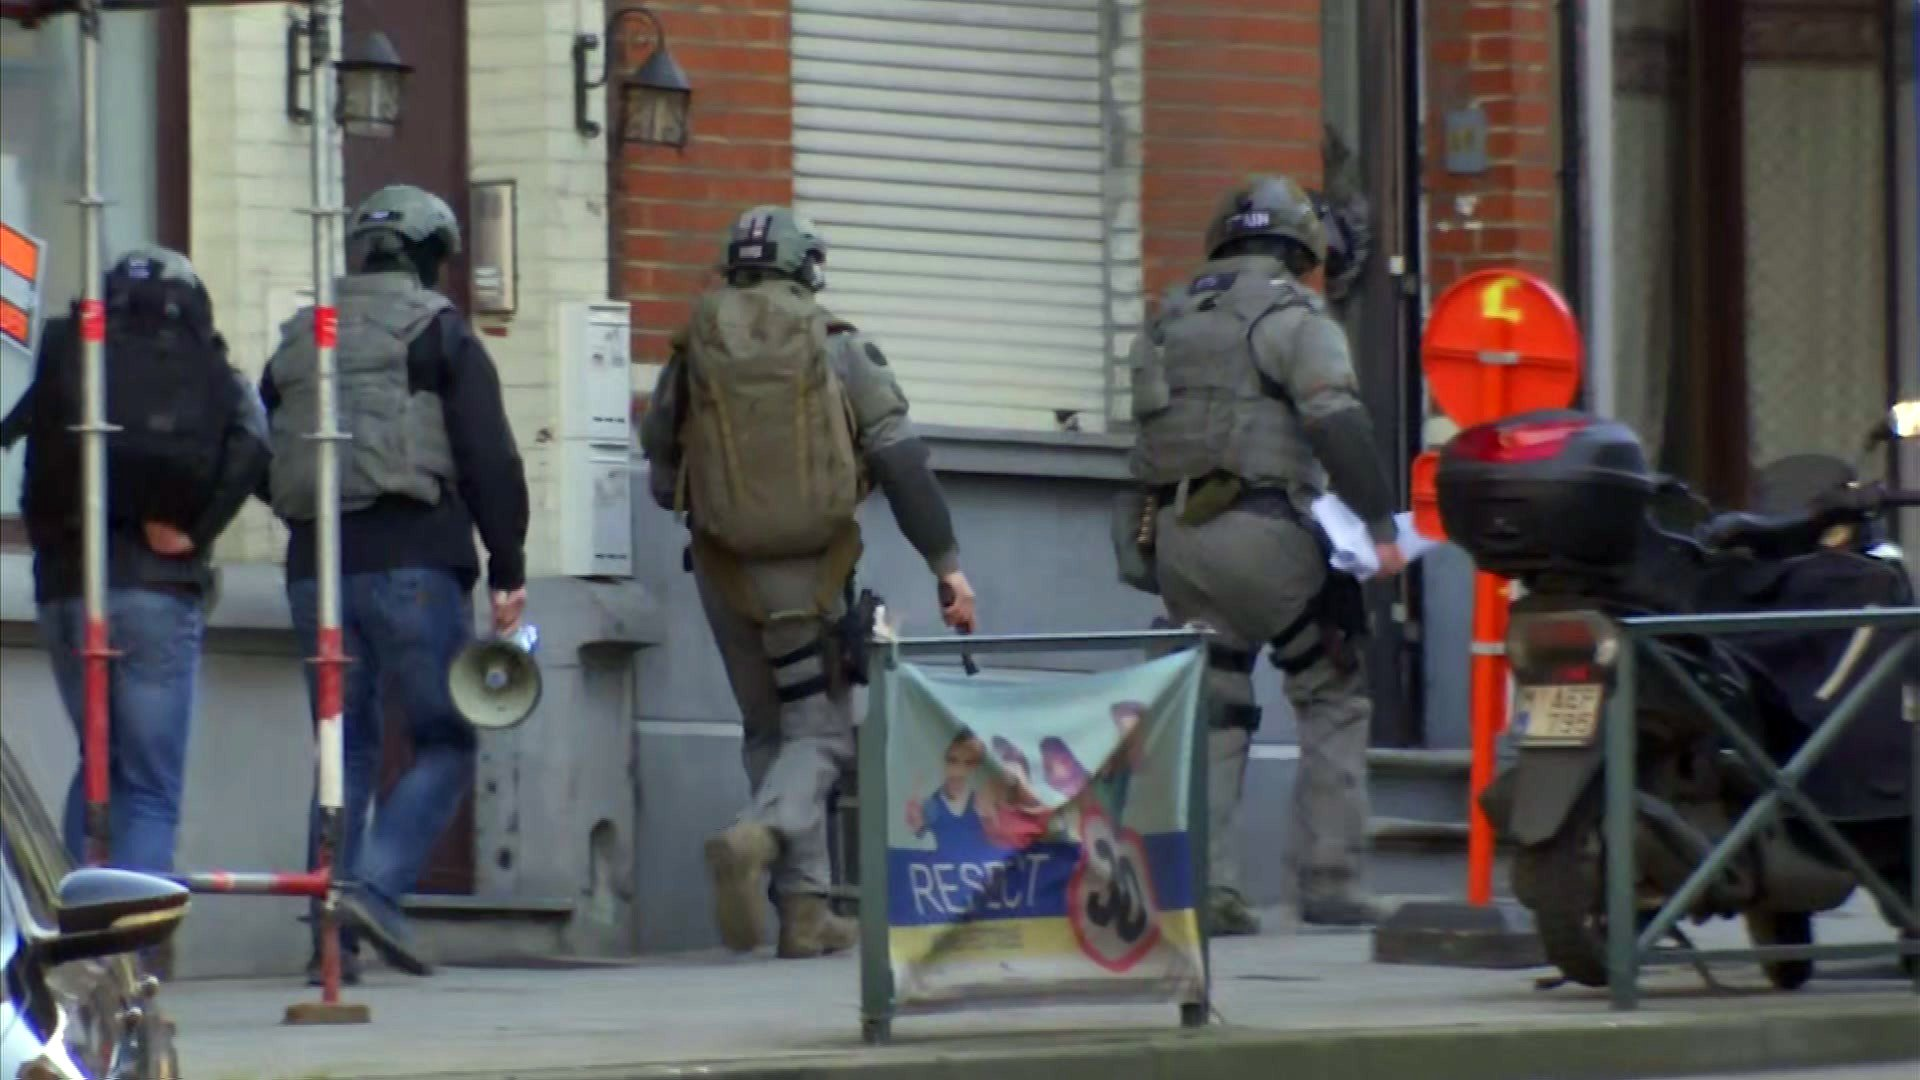 Police seal off Brussels streets amid reports of gunman